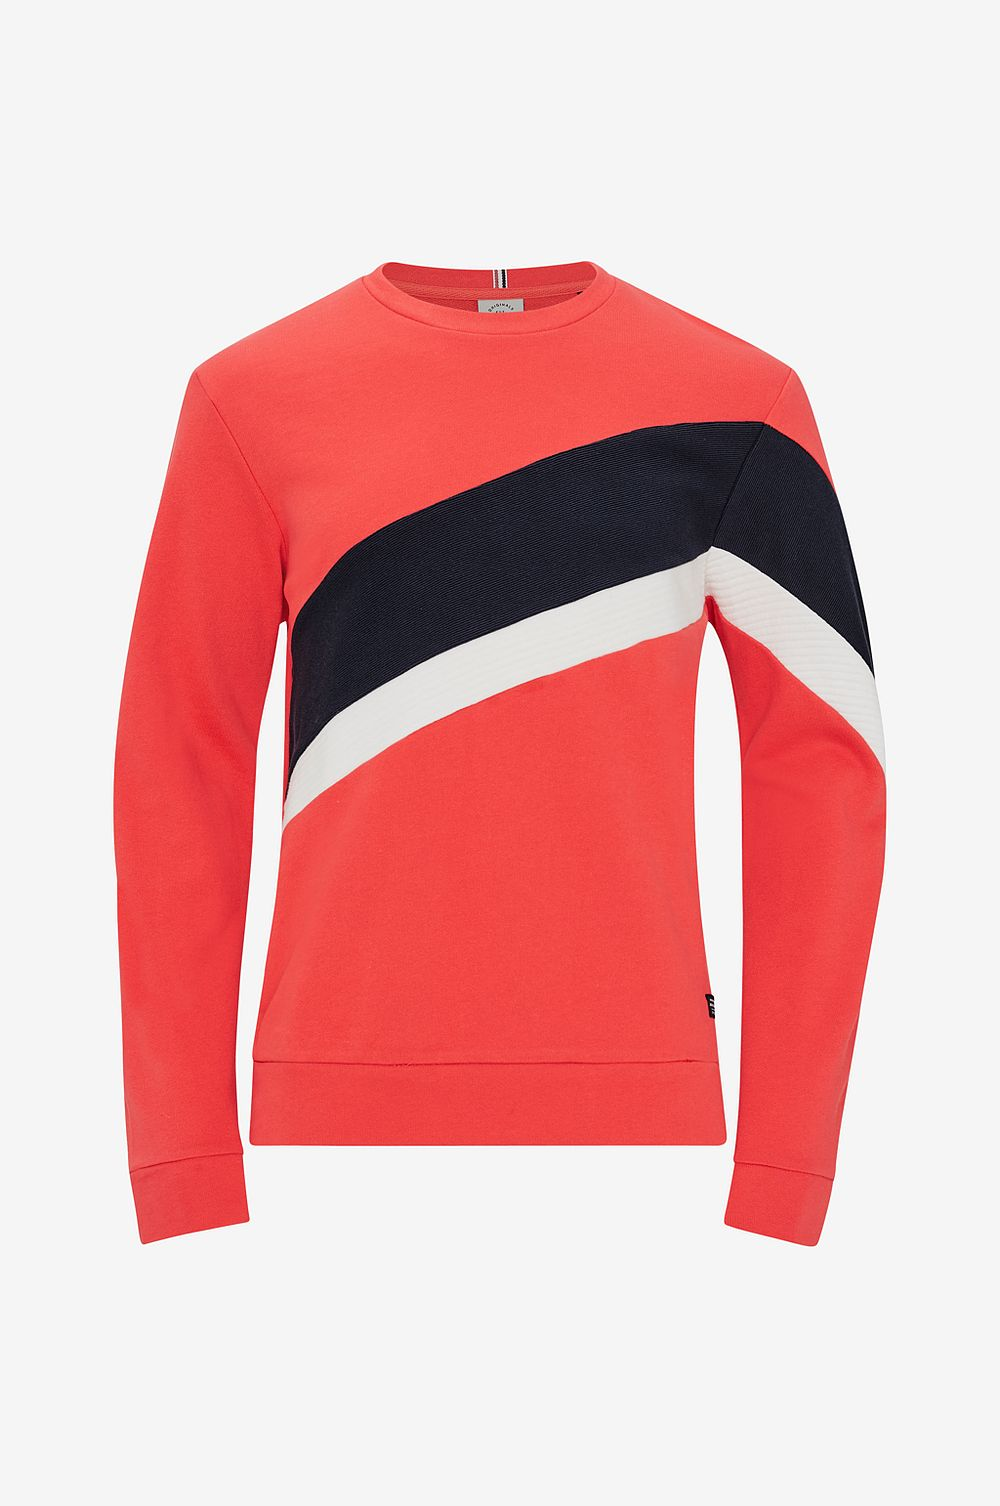 Jack & Jones Sweatshirt jorBlocko Sweat Crew Neck - Röd - Herr